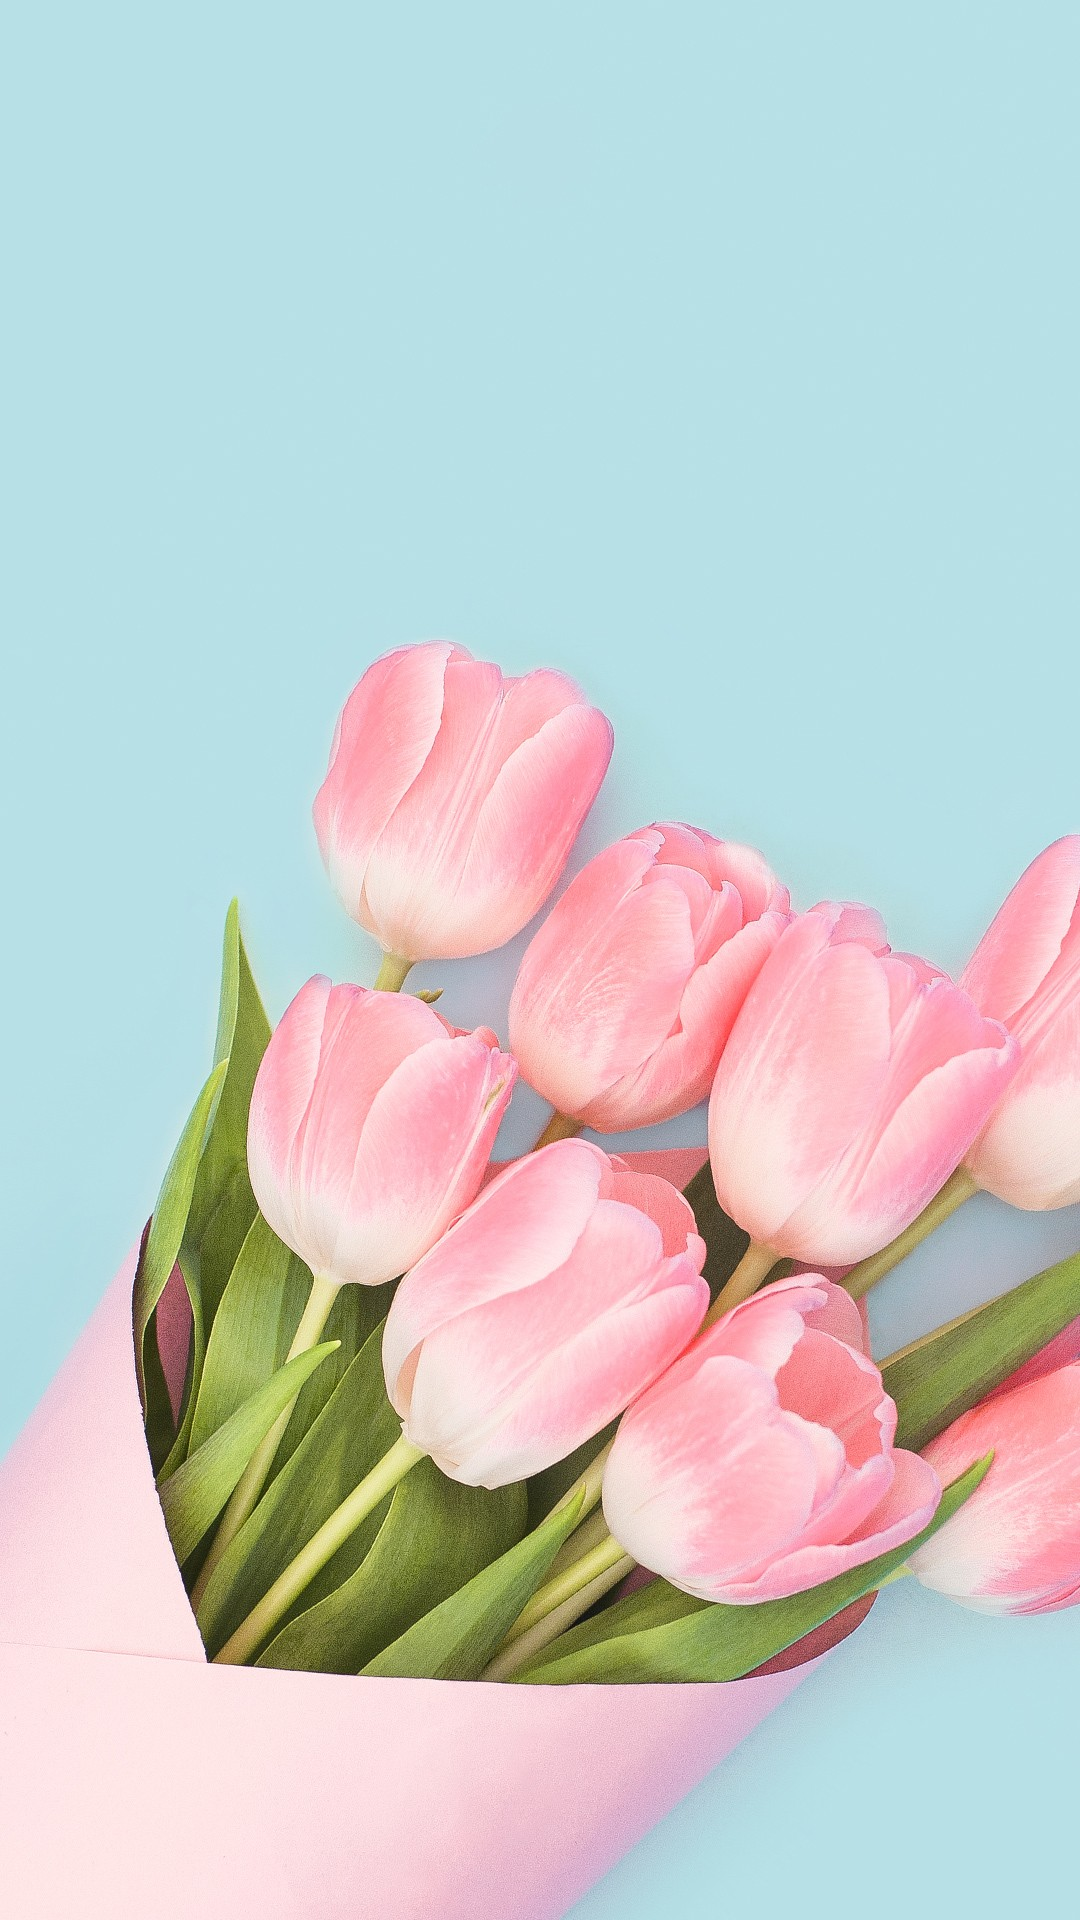 Cute Pink Wallpaper For Iphone 6 Plus Baby Pink Tulips Wallpapers Hd Wallpapers Id 22031